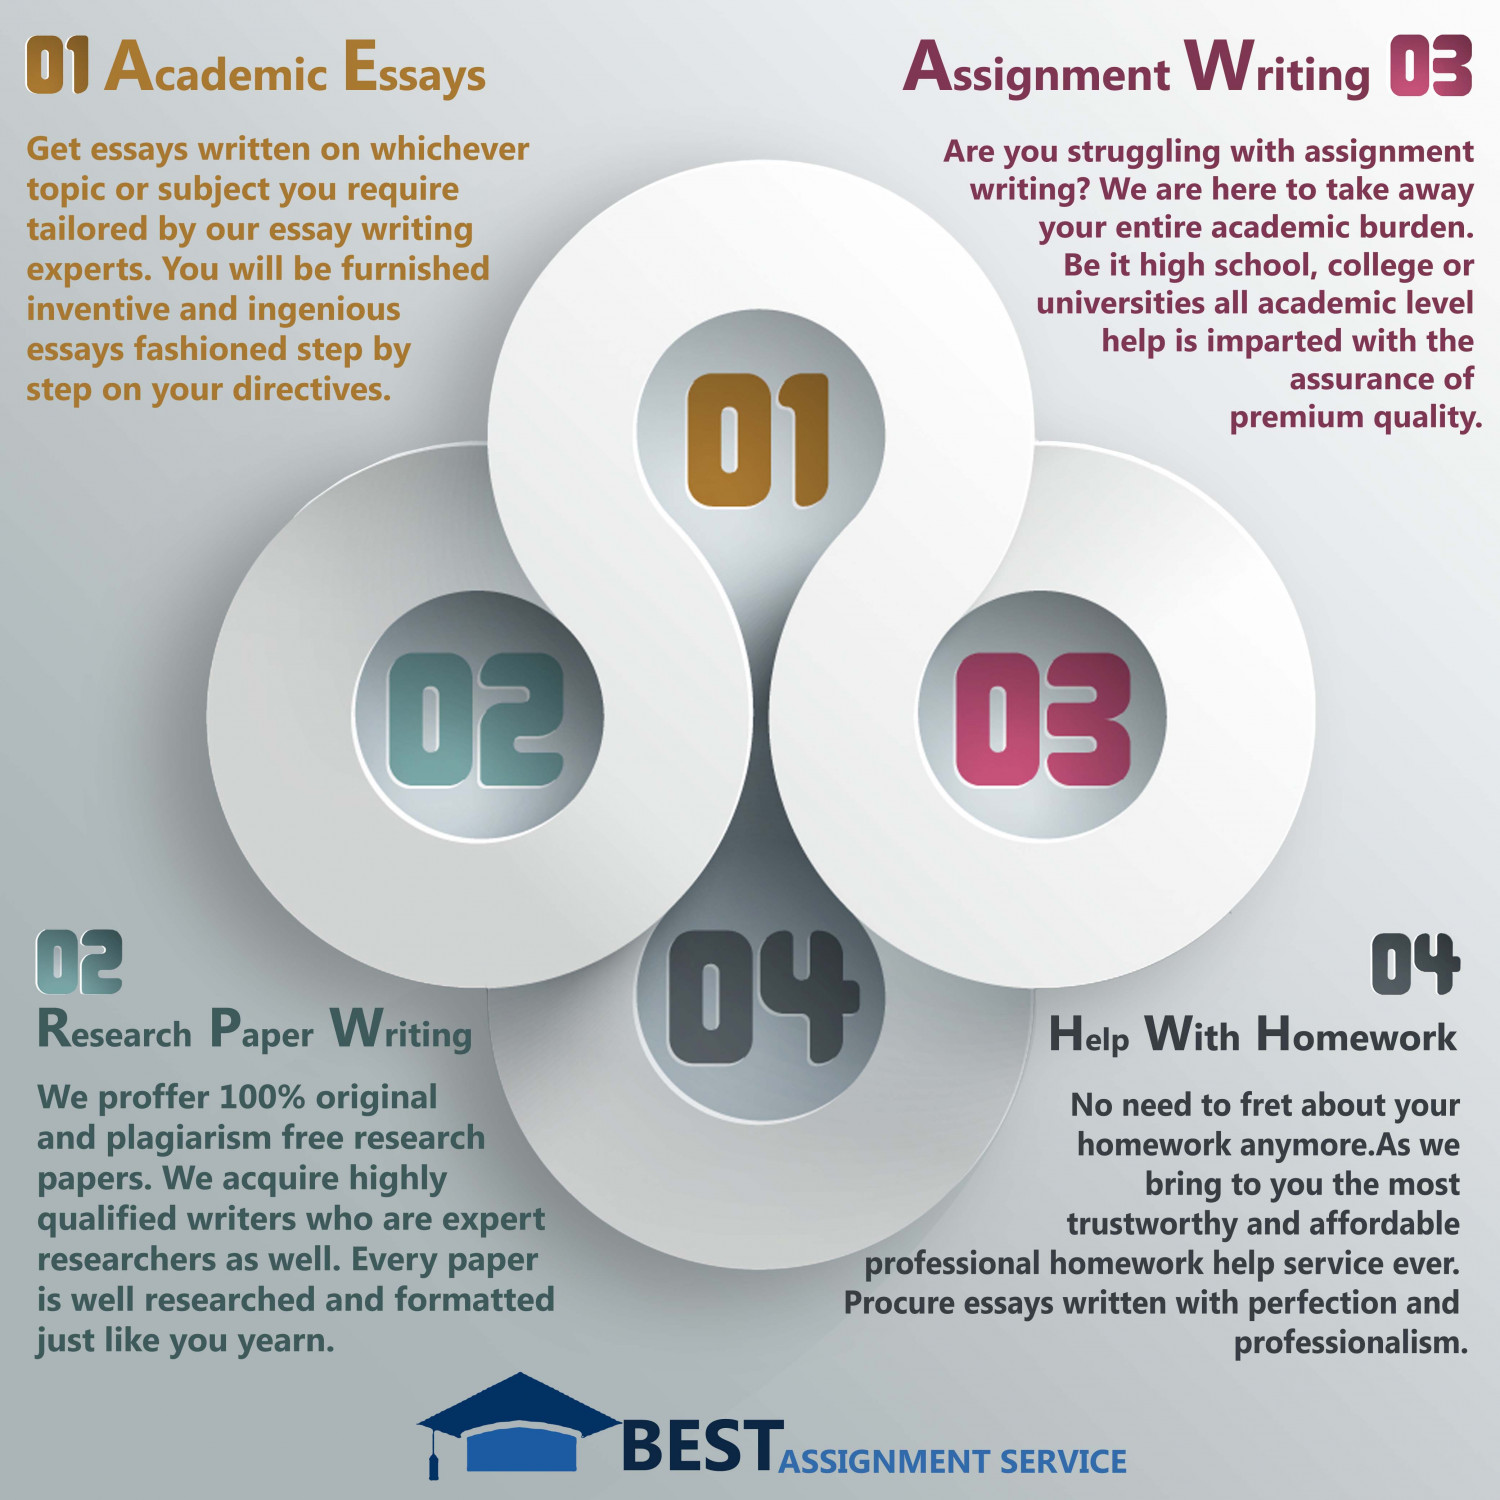 best assignment service ly best assignment service infographic